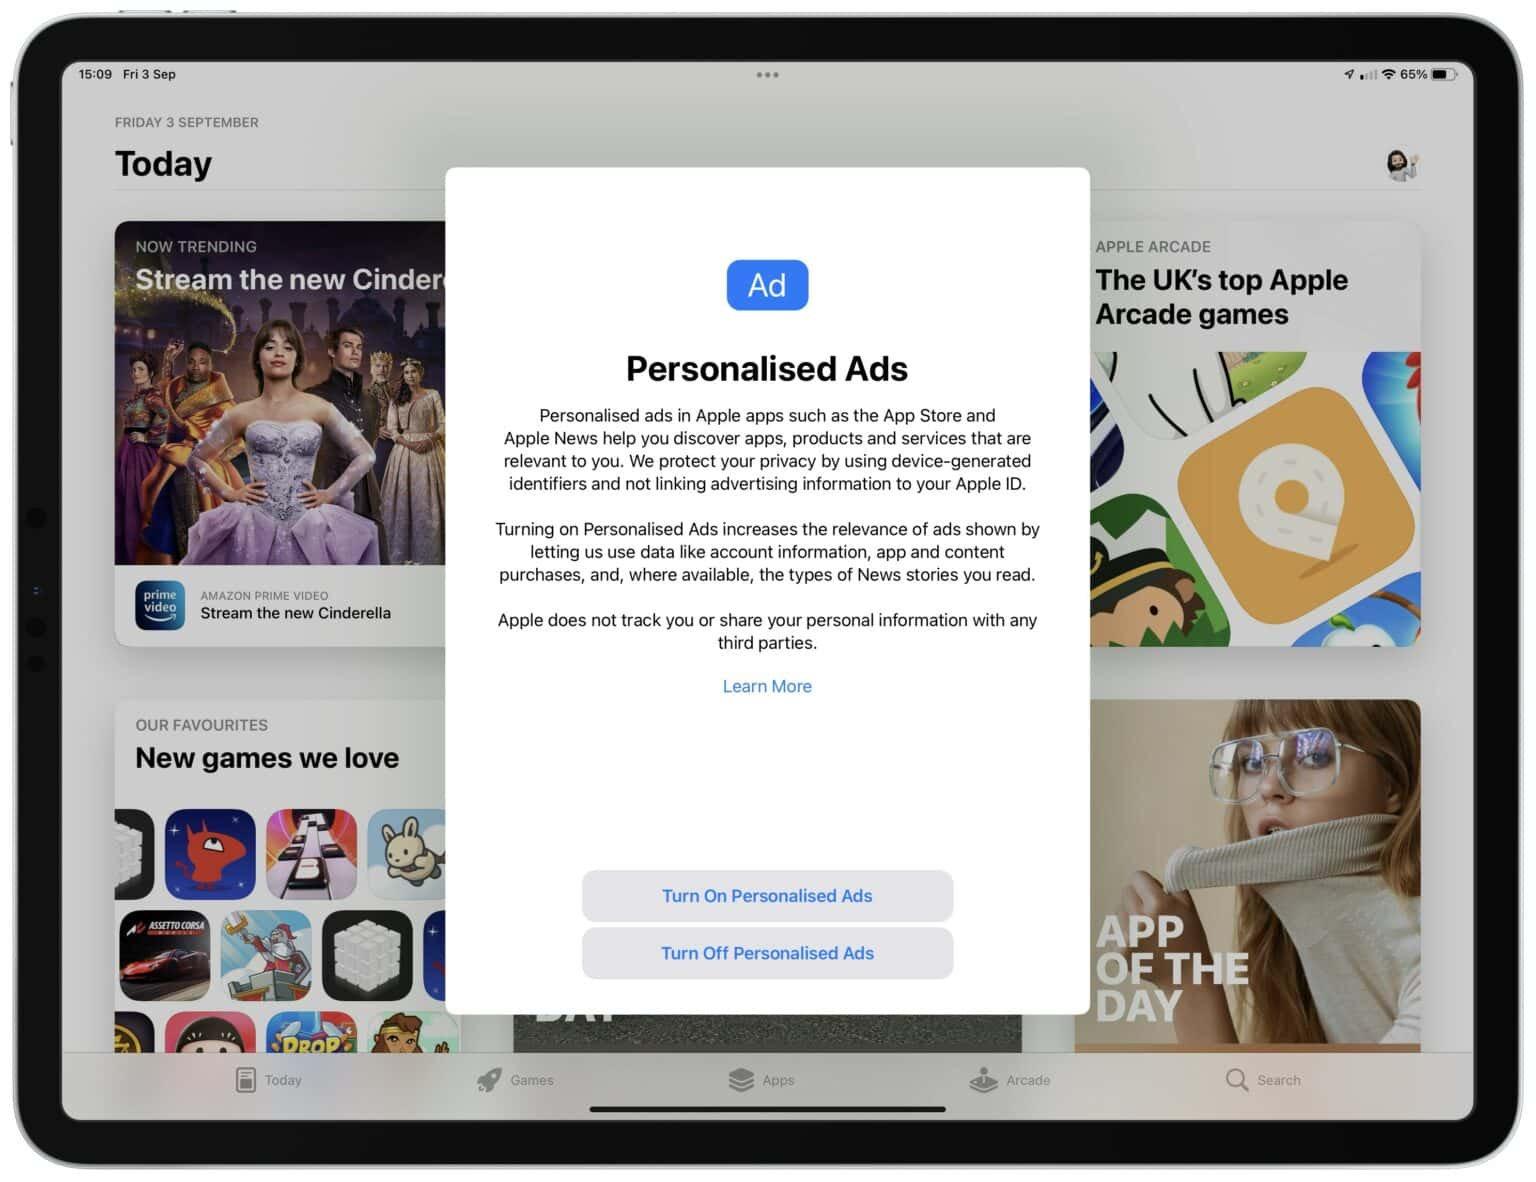 Personalized ads popup in iOS 15